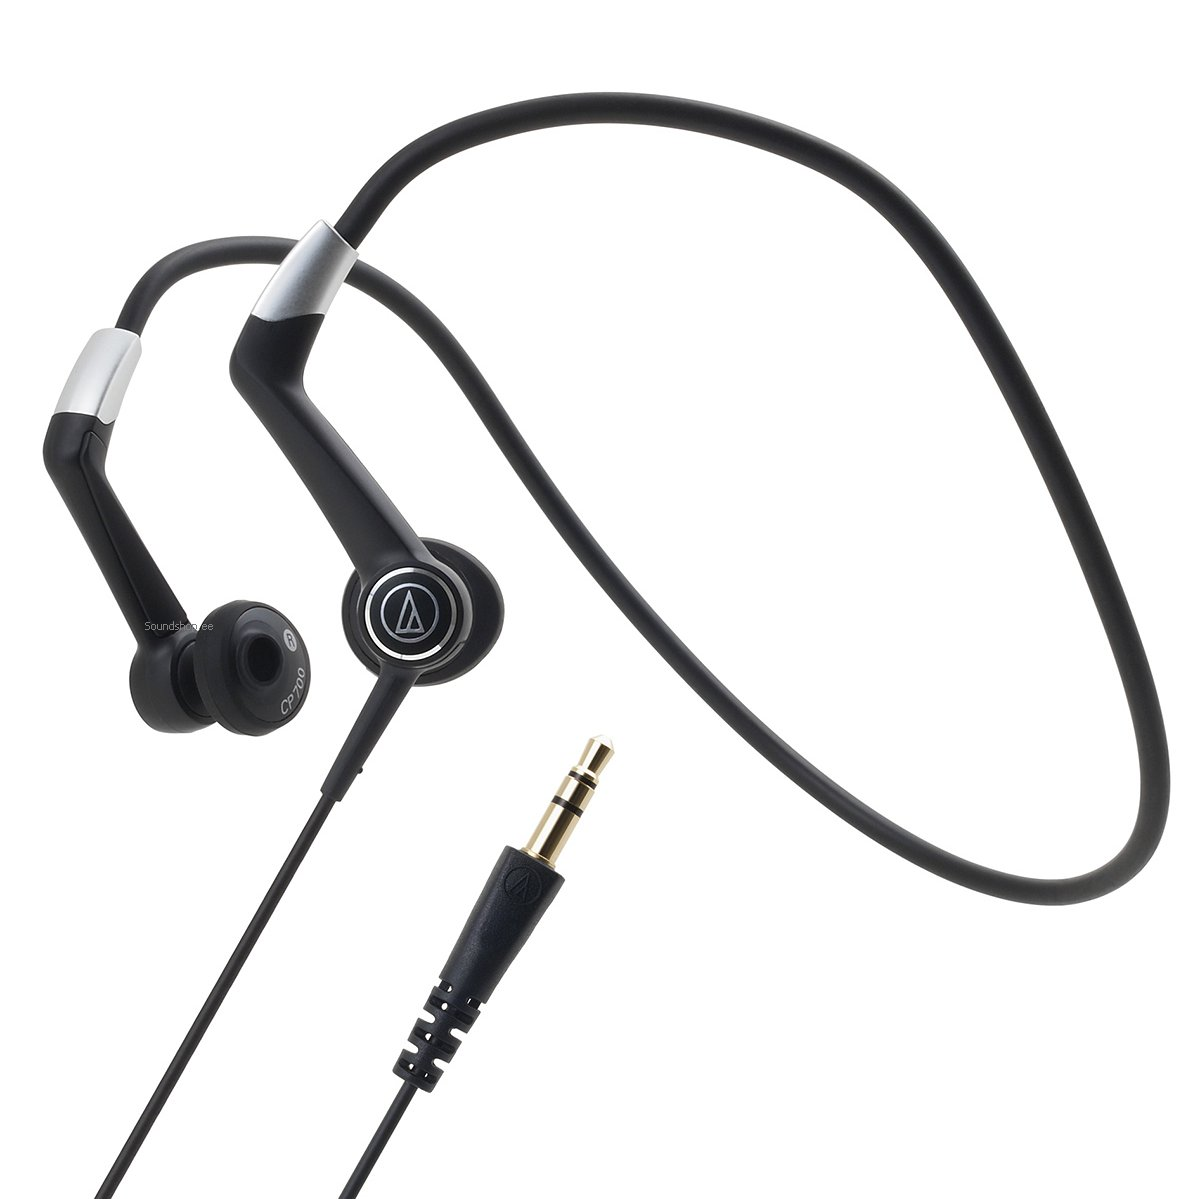 Audio-Technica ATH-CP700 SonicSport pilt 0